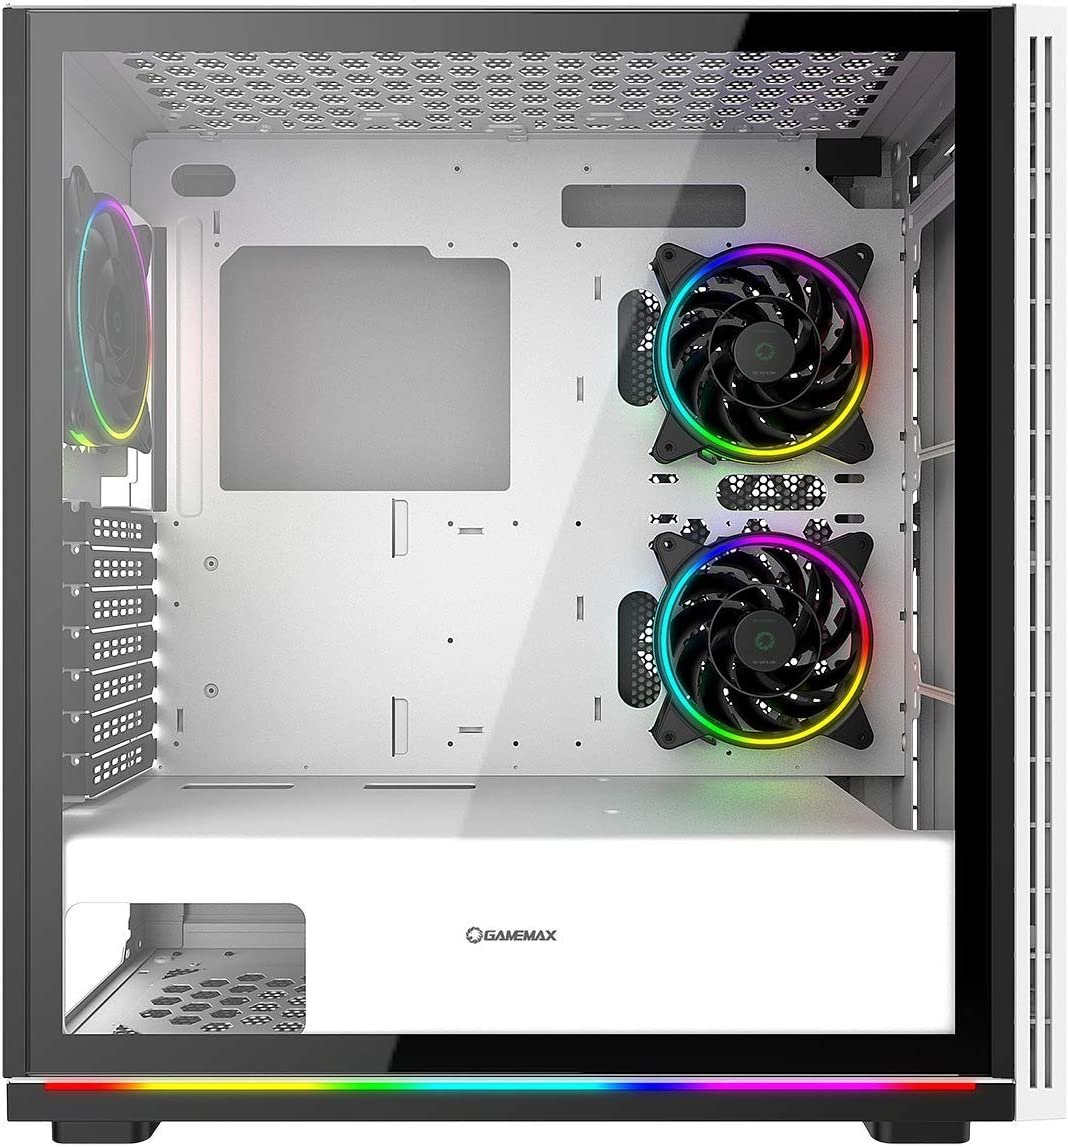 6 Fan Support ARGB Hub 2 x ARGB LED Strips Included 3 x 120mm Razor Fans Included Water-Cooling Ready GameMax Ice ARGB PC Gaming Case ATX White//Black